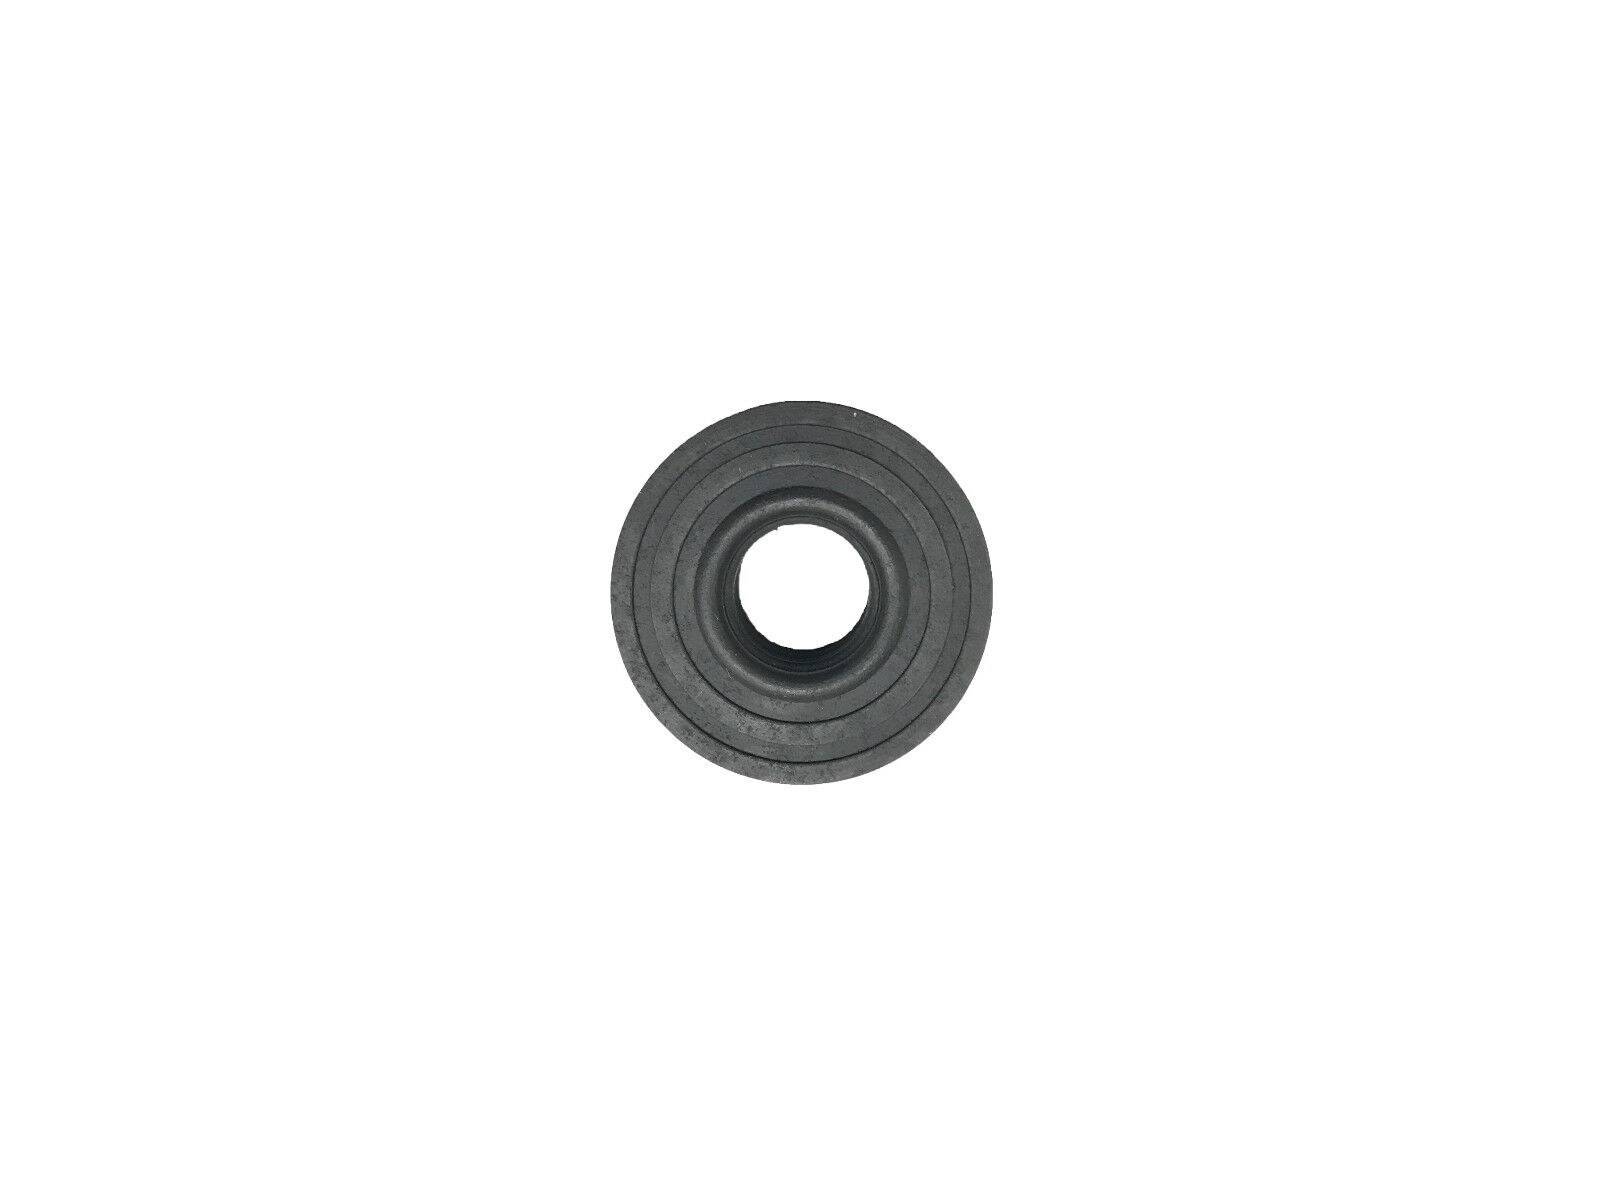 Details about Ink Fountain Roller Seal For AB Dick A-18360 Offset  Replacement Parts